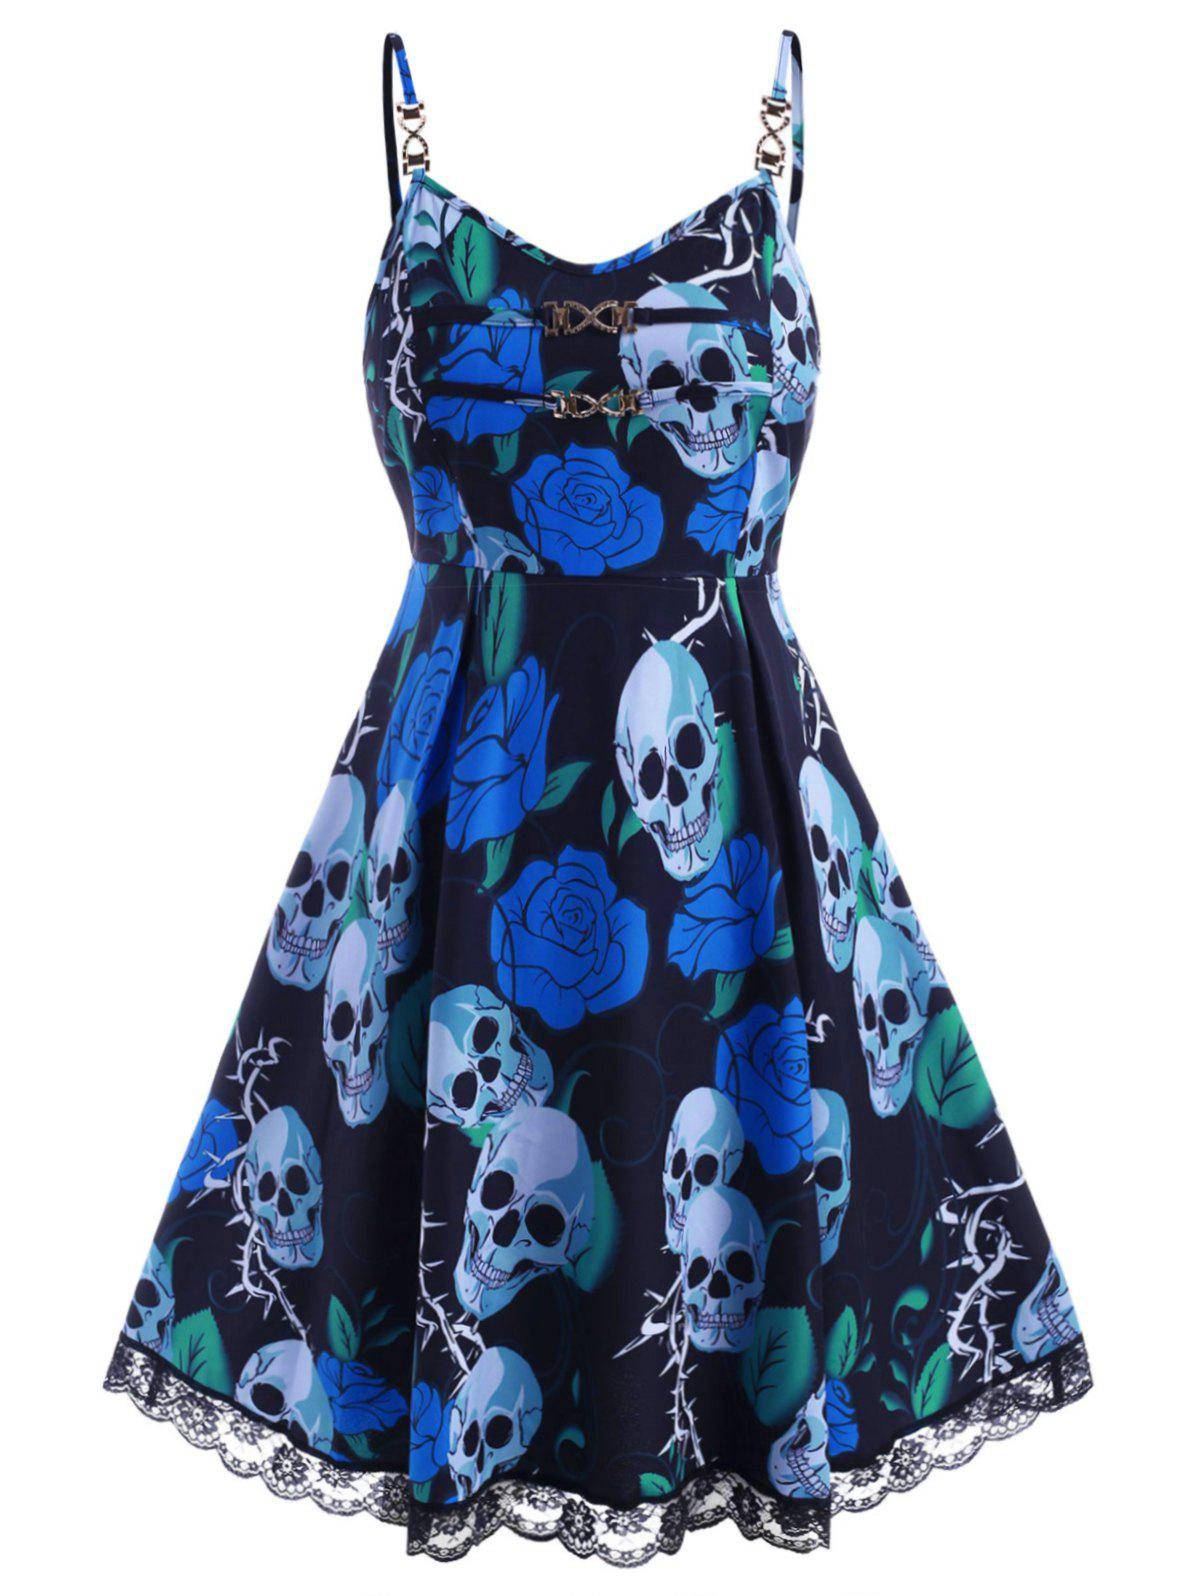 New Chains Lace Trim Rose Skull Halloween Plus Size Dress